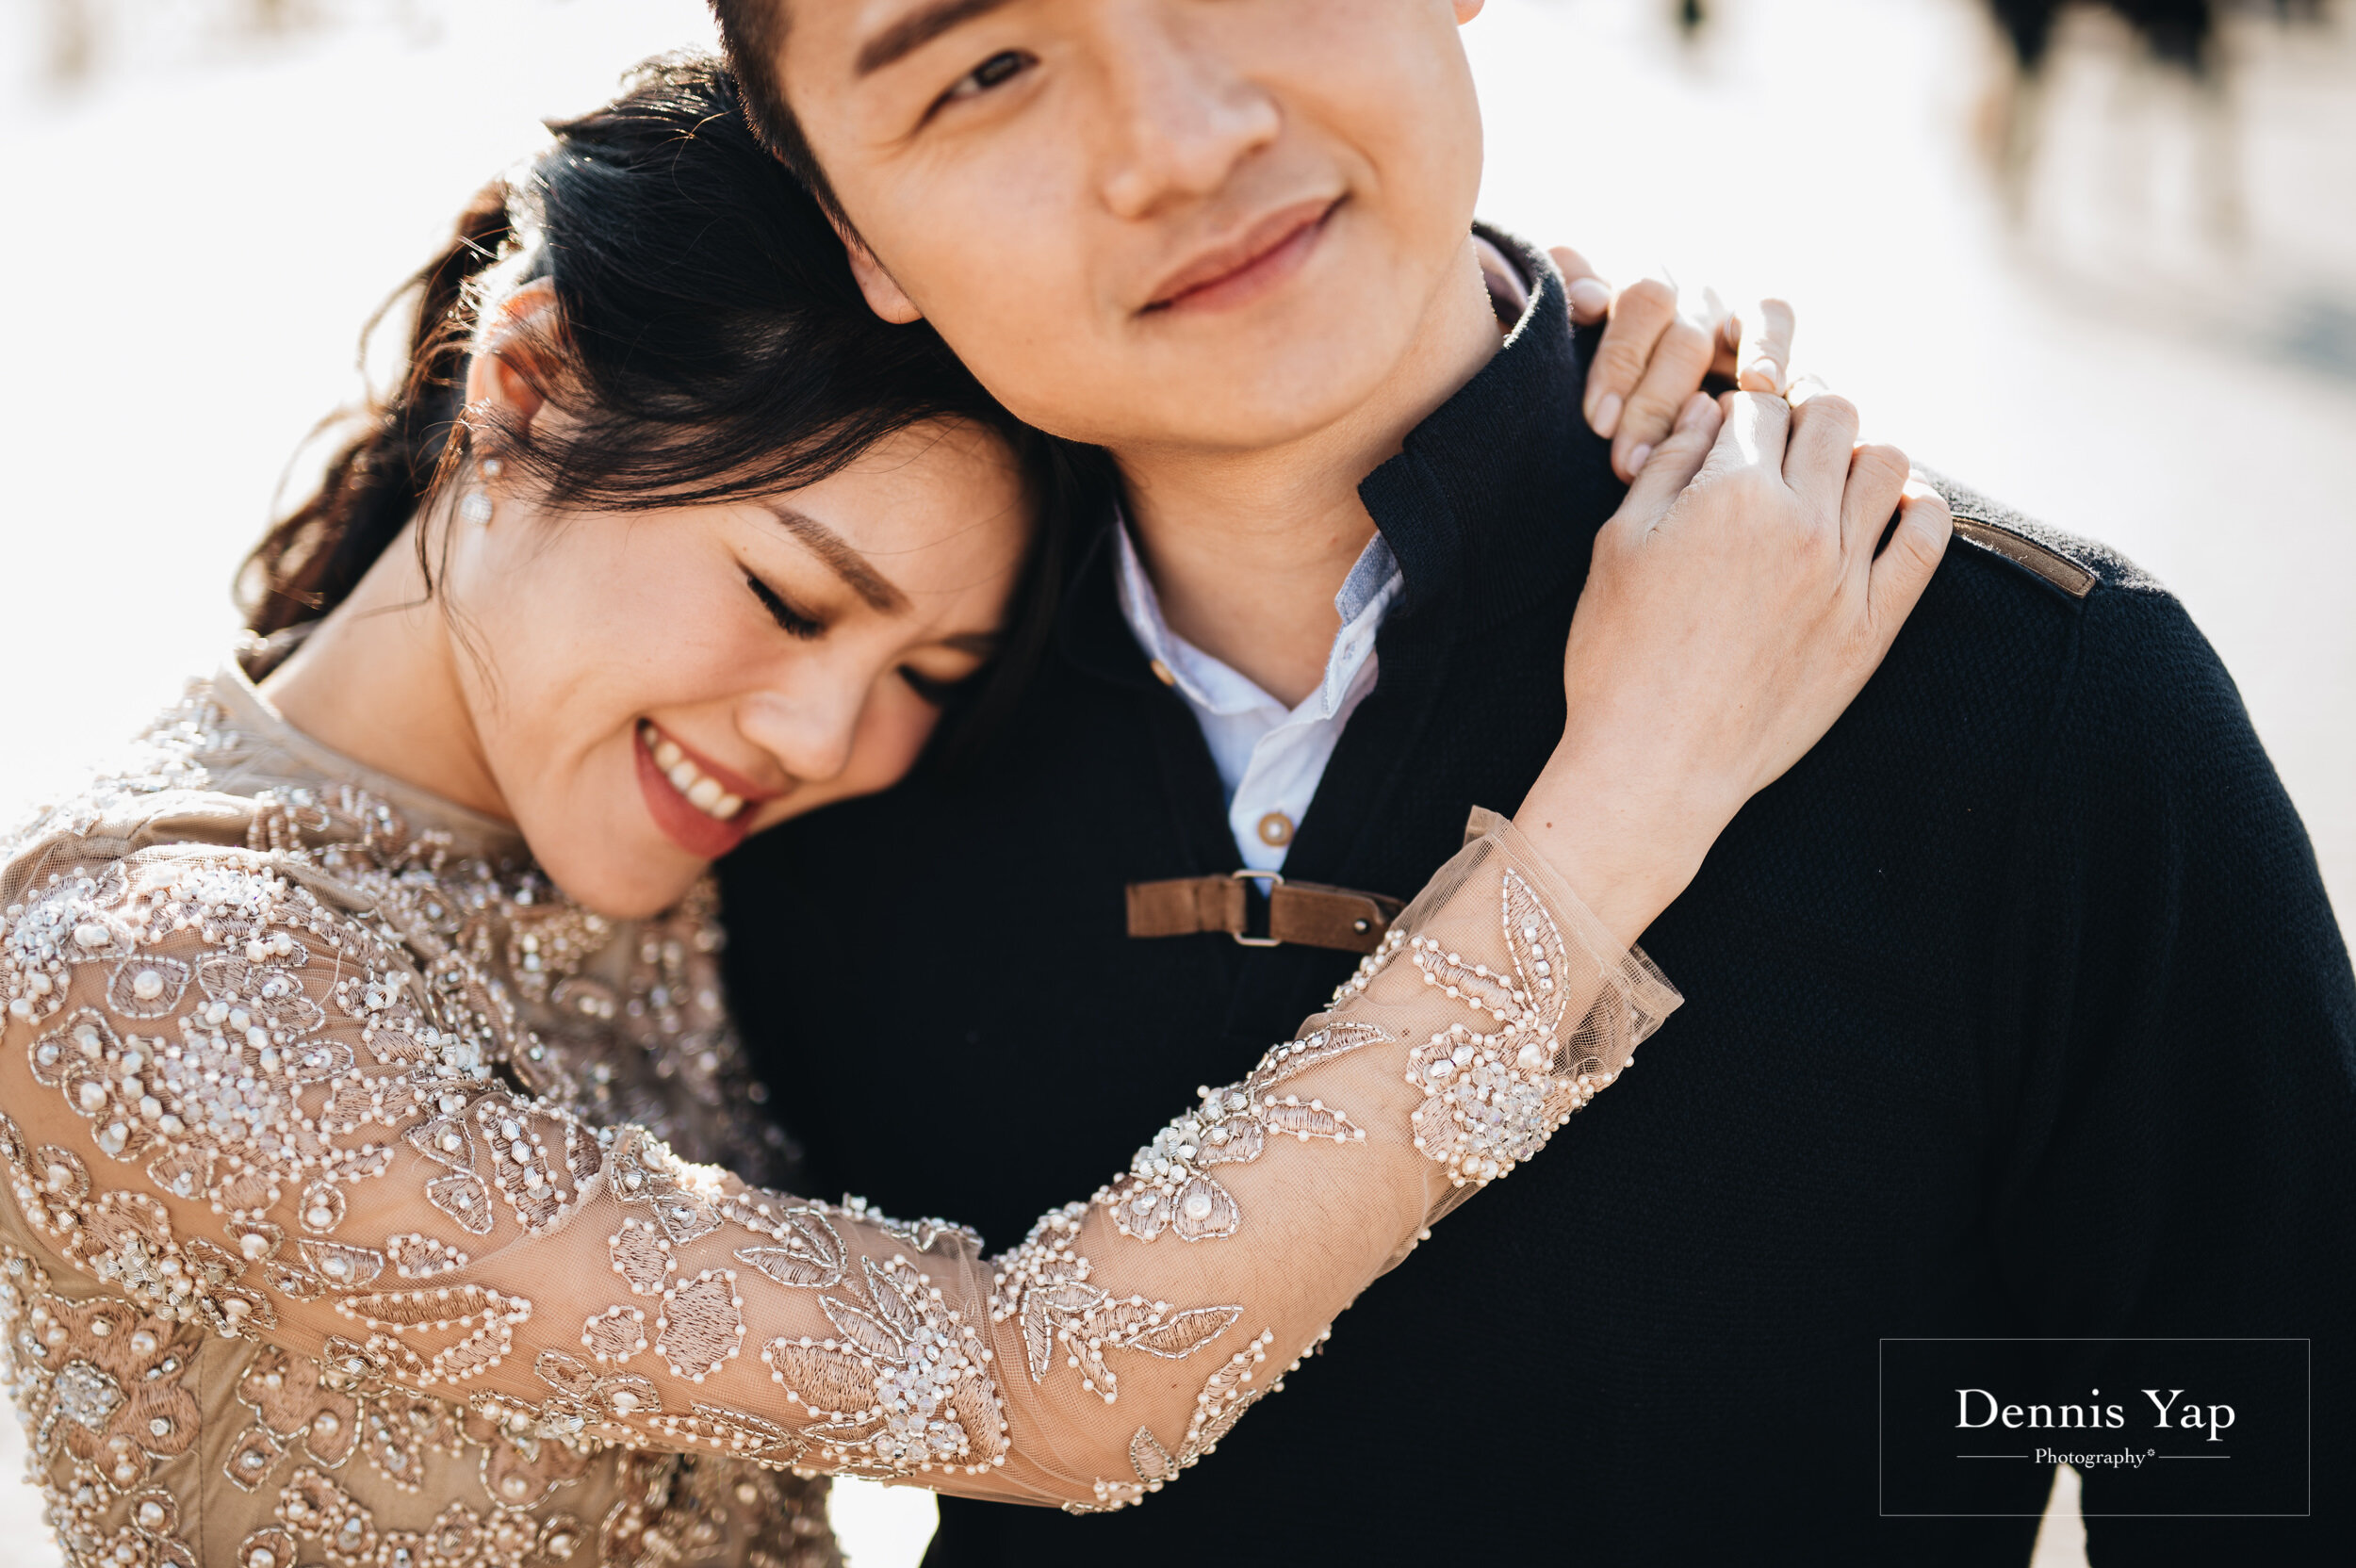 alex chloe pre wedding rome italy dennis yap photography overseas portrait classic beloved-124.jpg